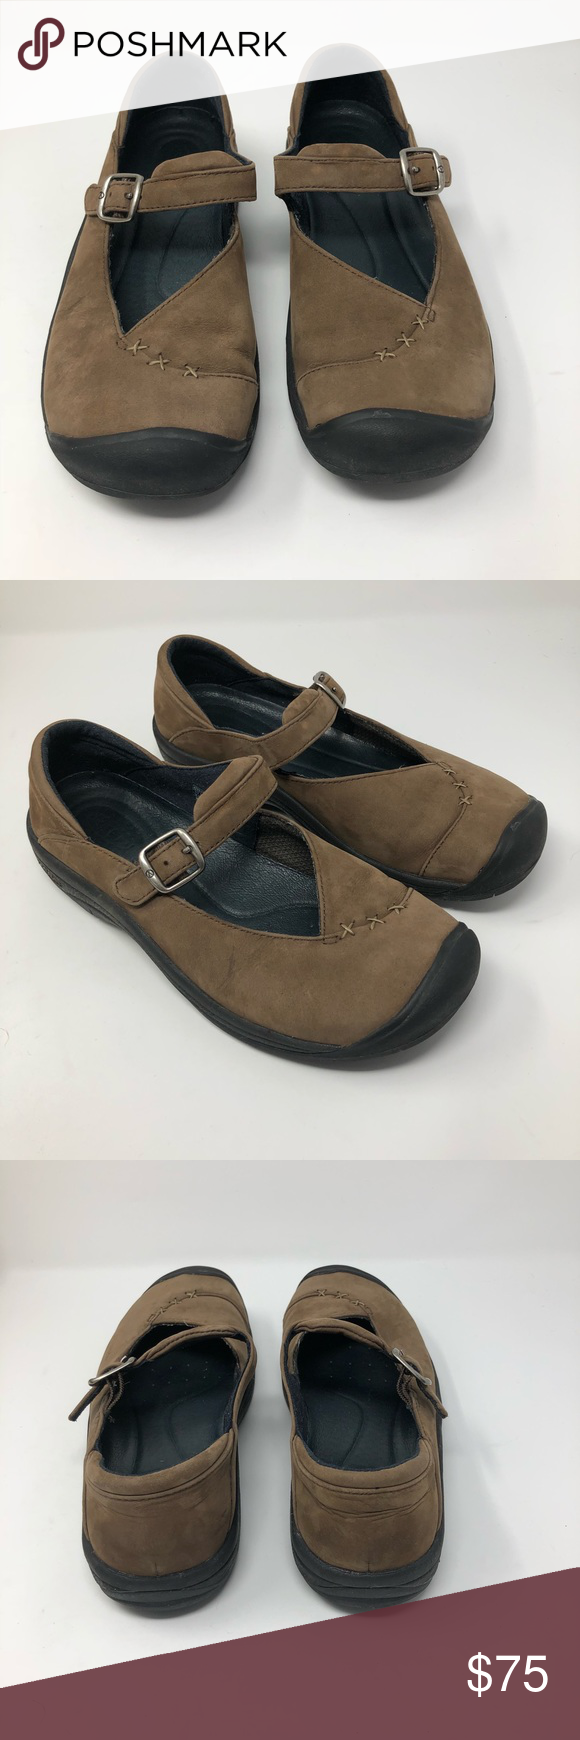 8cc4011e29ba Keen Womens Verona Casual Or Work shoe size 8 The KEEN Verona Mary Jane in  brown leather looks right for the office or a day on the town.